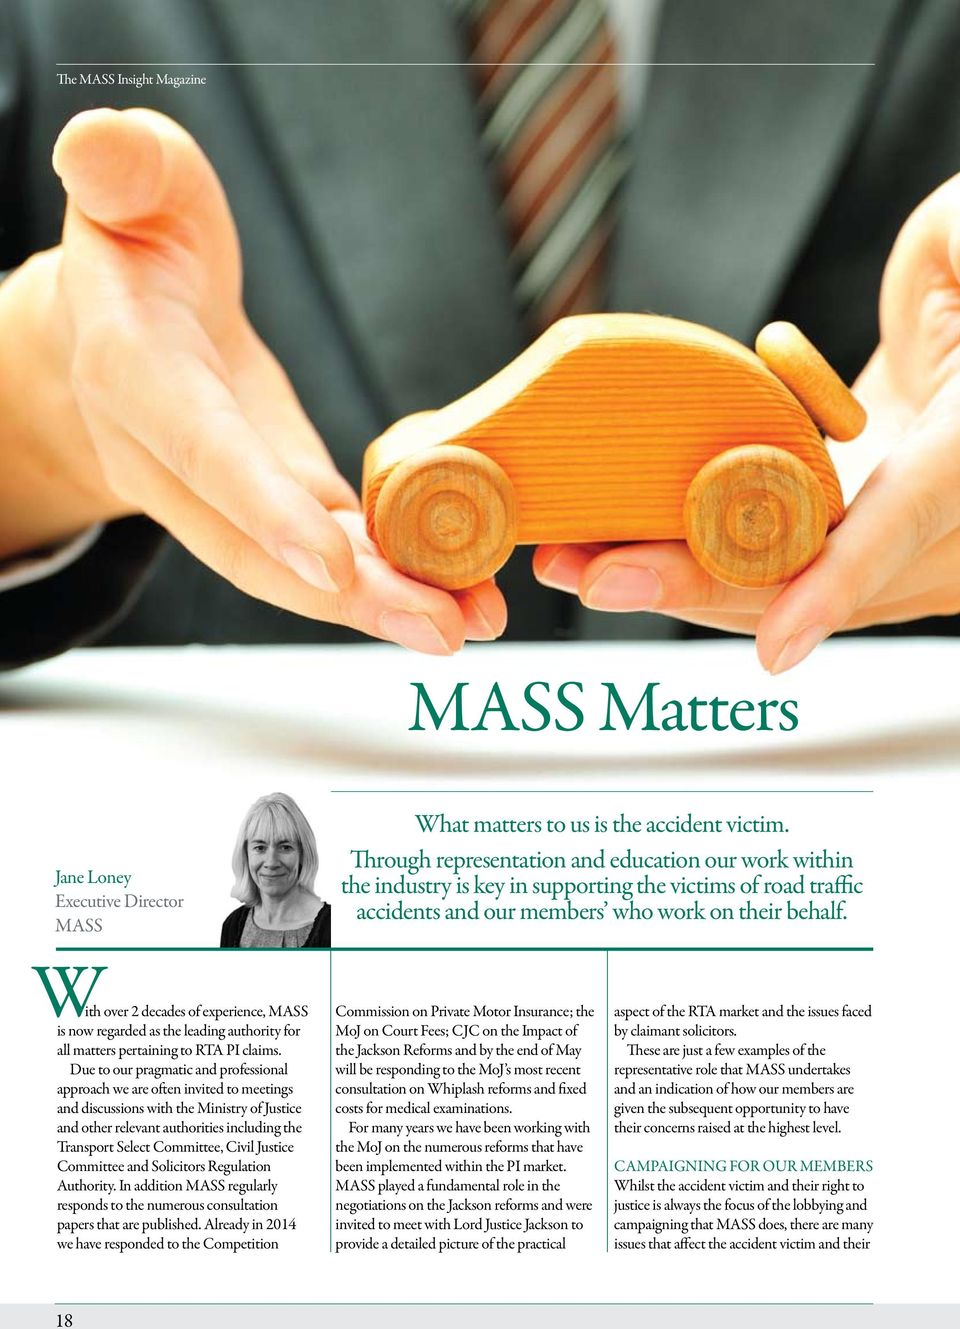 With over 2 decades of experience, MASS is now regarded as the leading authority for all matters pertaining to RTA PI claims.